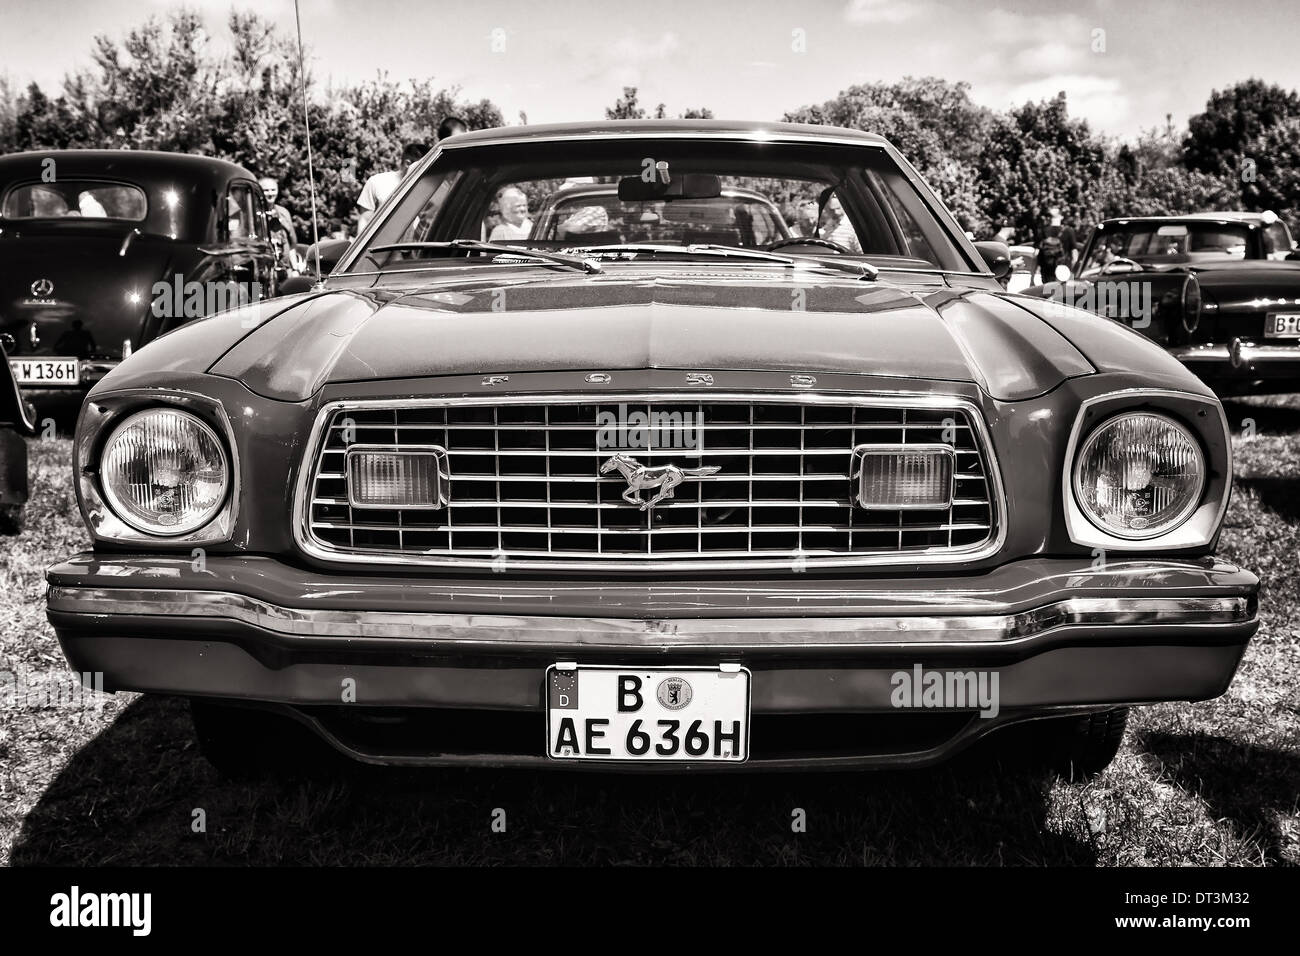 Pony car ford mustang second generation